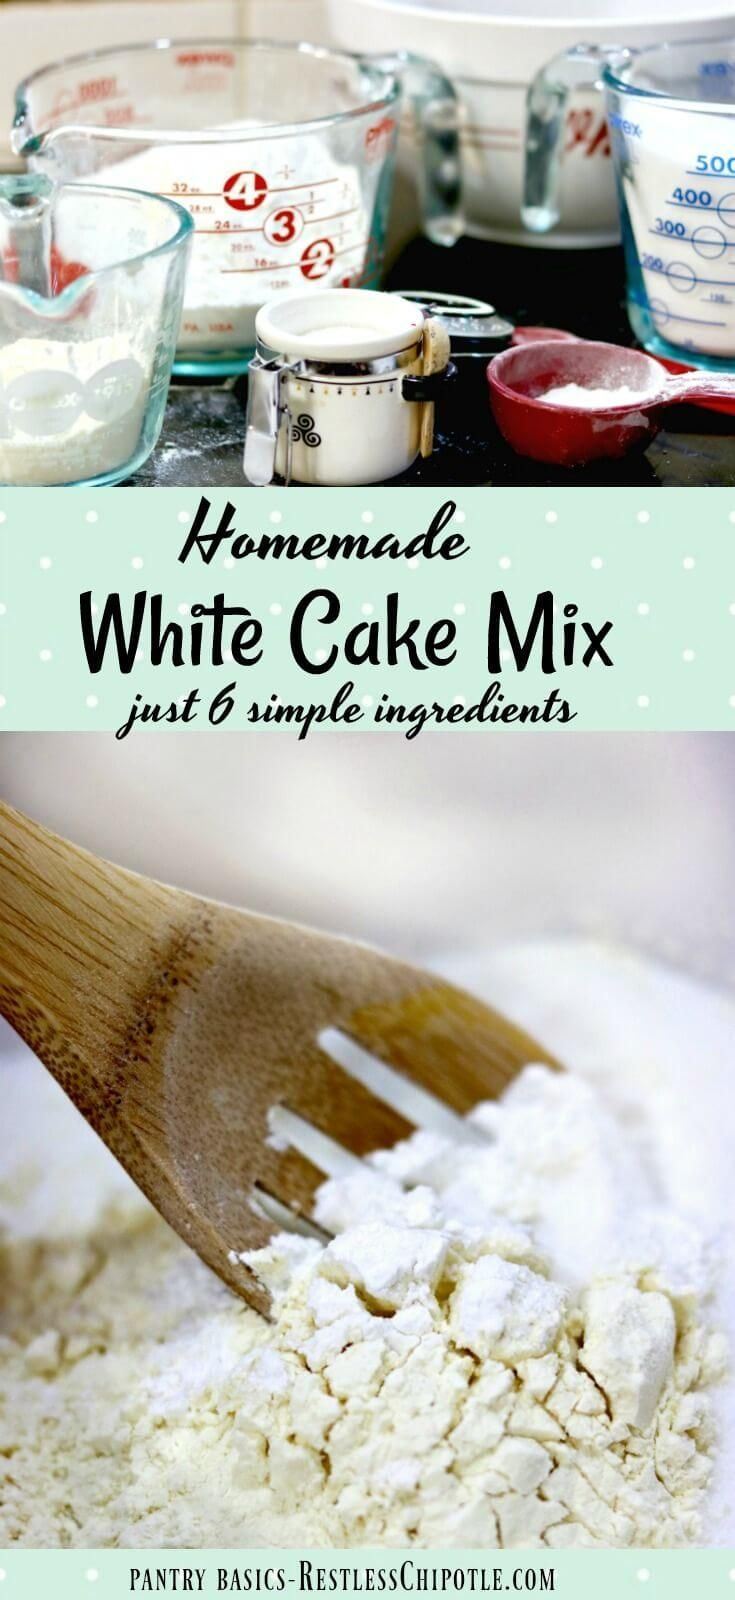 This homemade white cake mix is easy to mix up and stays fresh for several months on your pantry shelf. Saves money and tastes great, too. 6 ingredients. From restlesschipotle.com via @Marye at Restless Chipotle